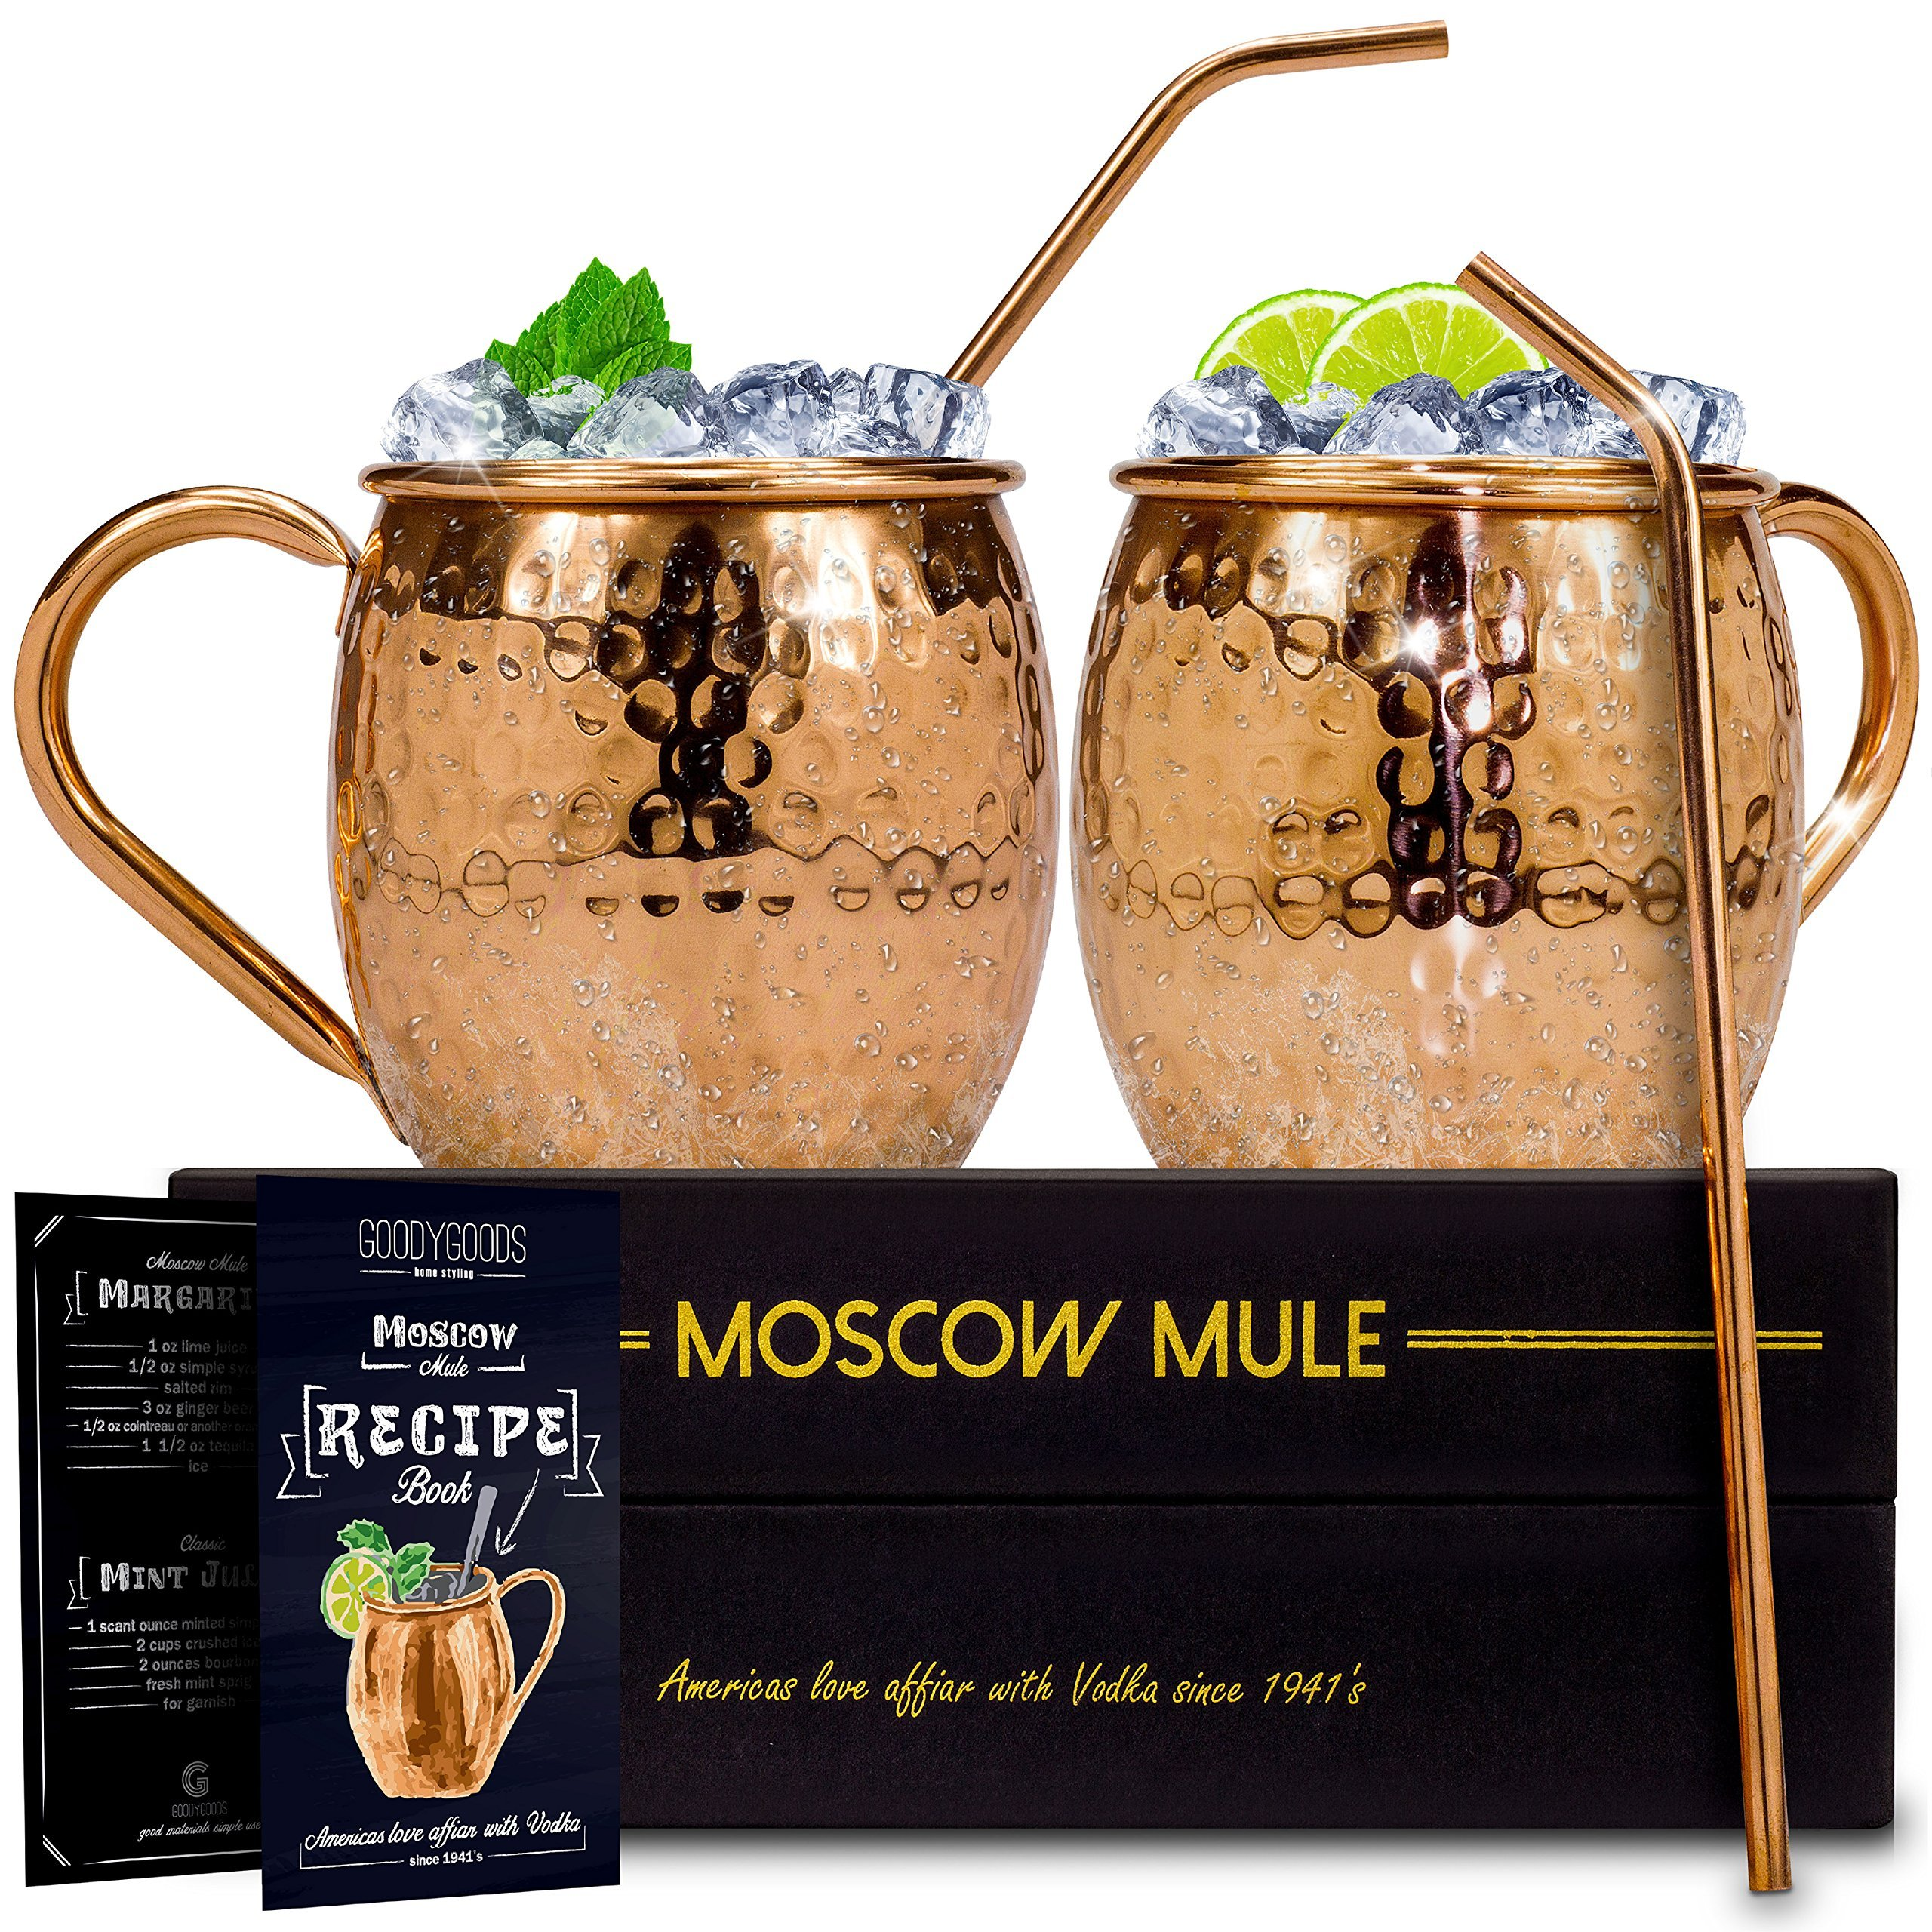 GoodyGoods Moscow Mule Copper Mugs: Make Any Drink Taste Much Better! 100% Pure Solid Copper His & Hers Gift Set- 2 Hammered 16 OZ Copper Caps 2 Unique Straws, Jigger & Recipe Booklet! (Black, 16oz) by GoodyGoods-home styling